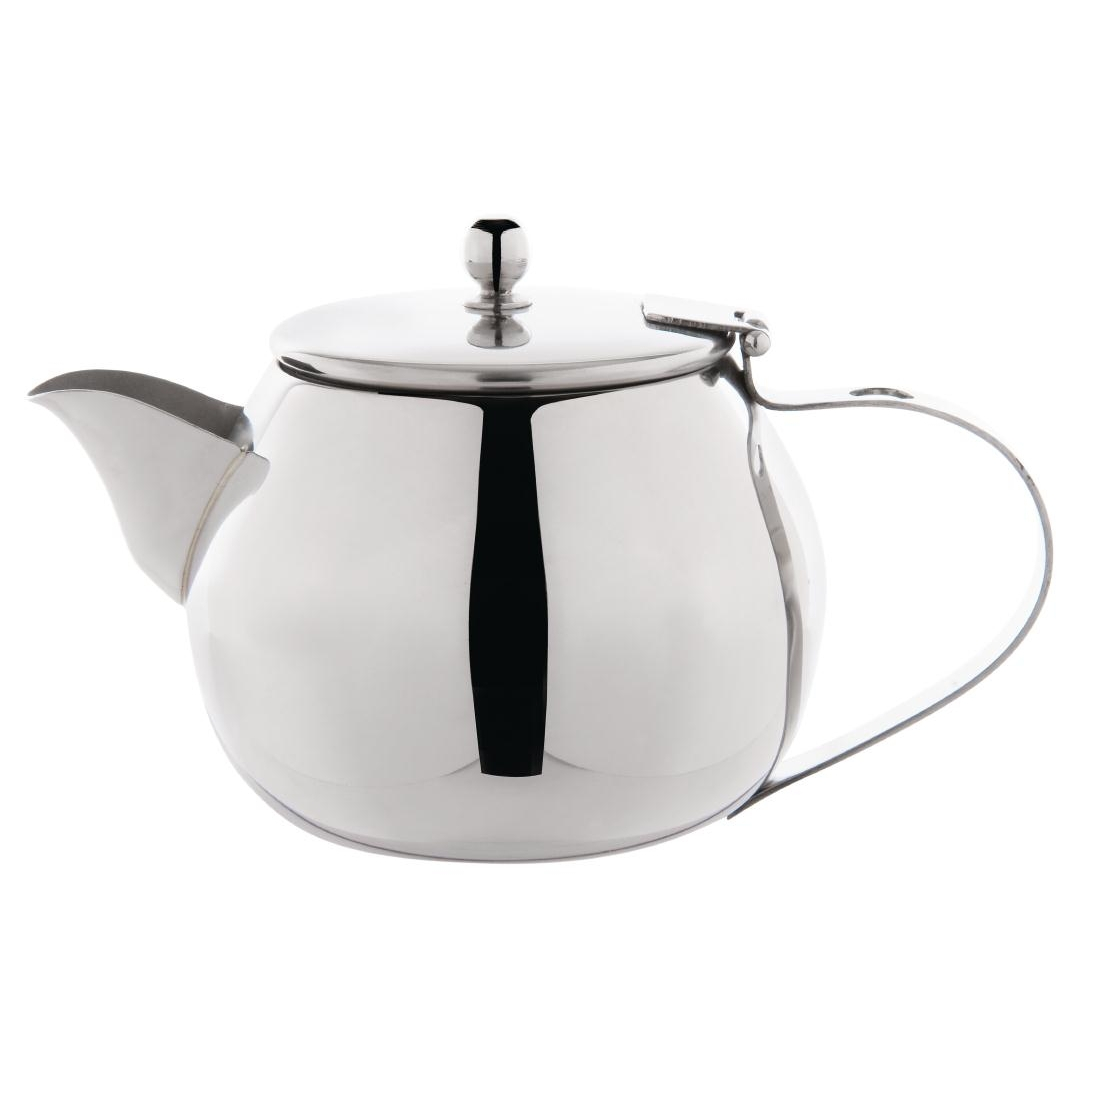 Non Stainless Steel Appliances Olympia Non Drip Teapot Stainless Steel 15oz Gc949 Buy Online